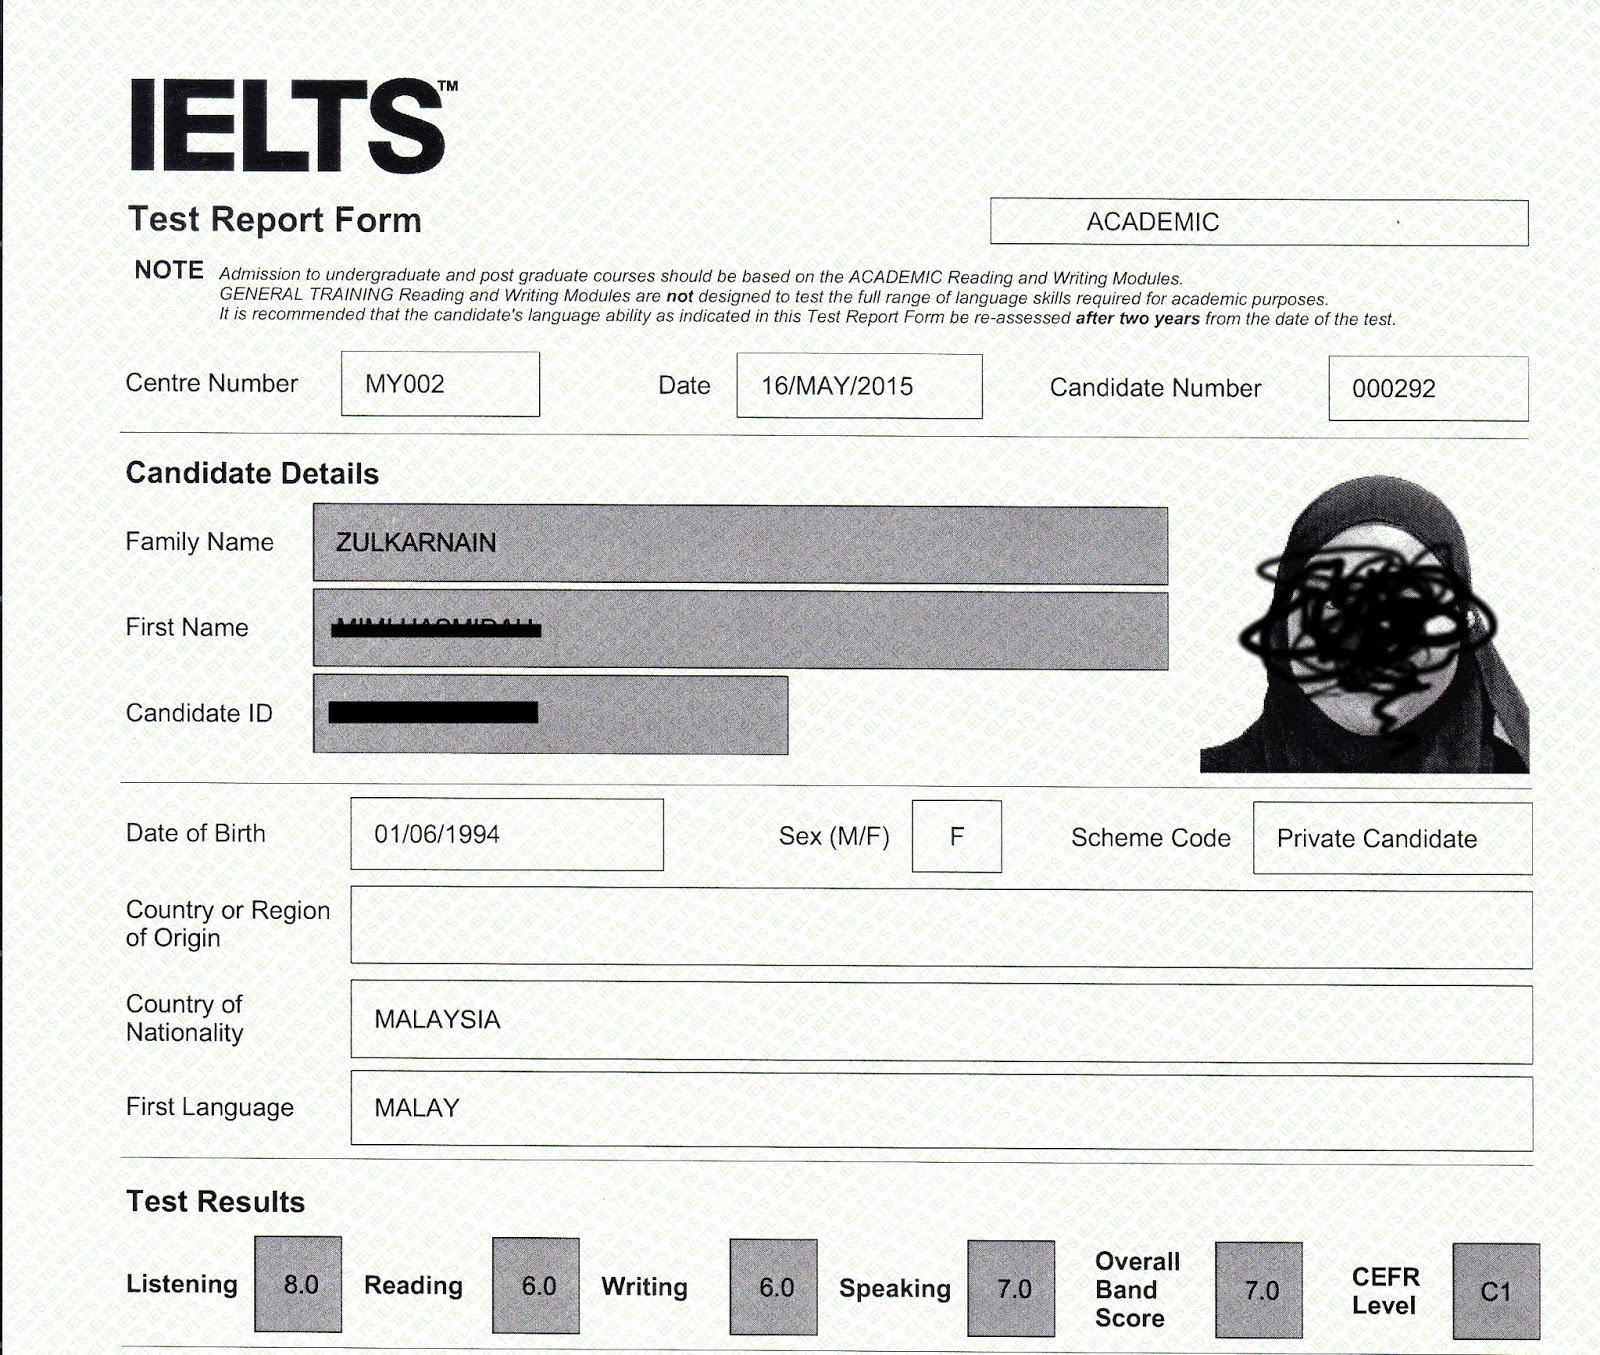 Ielts candidate number example